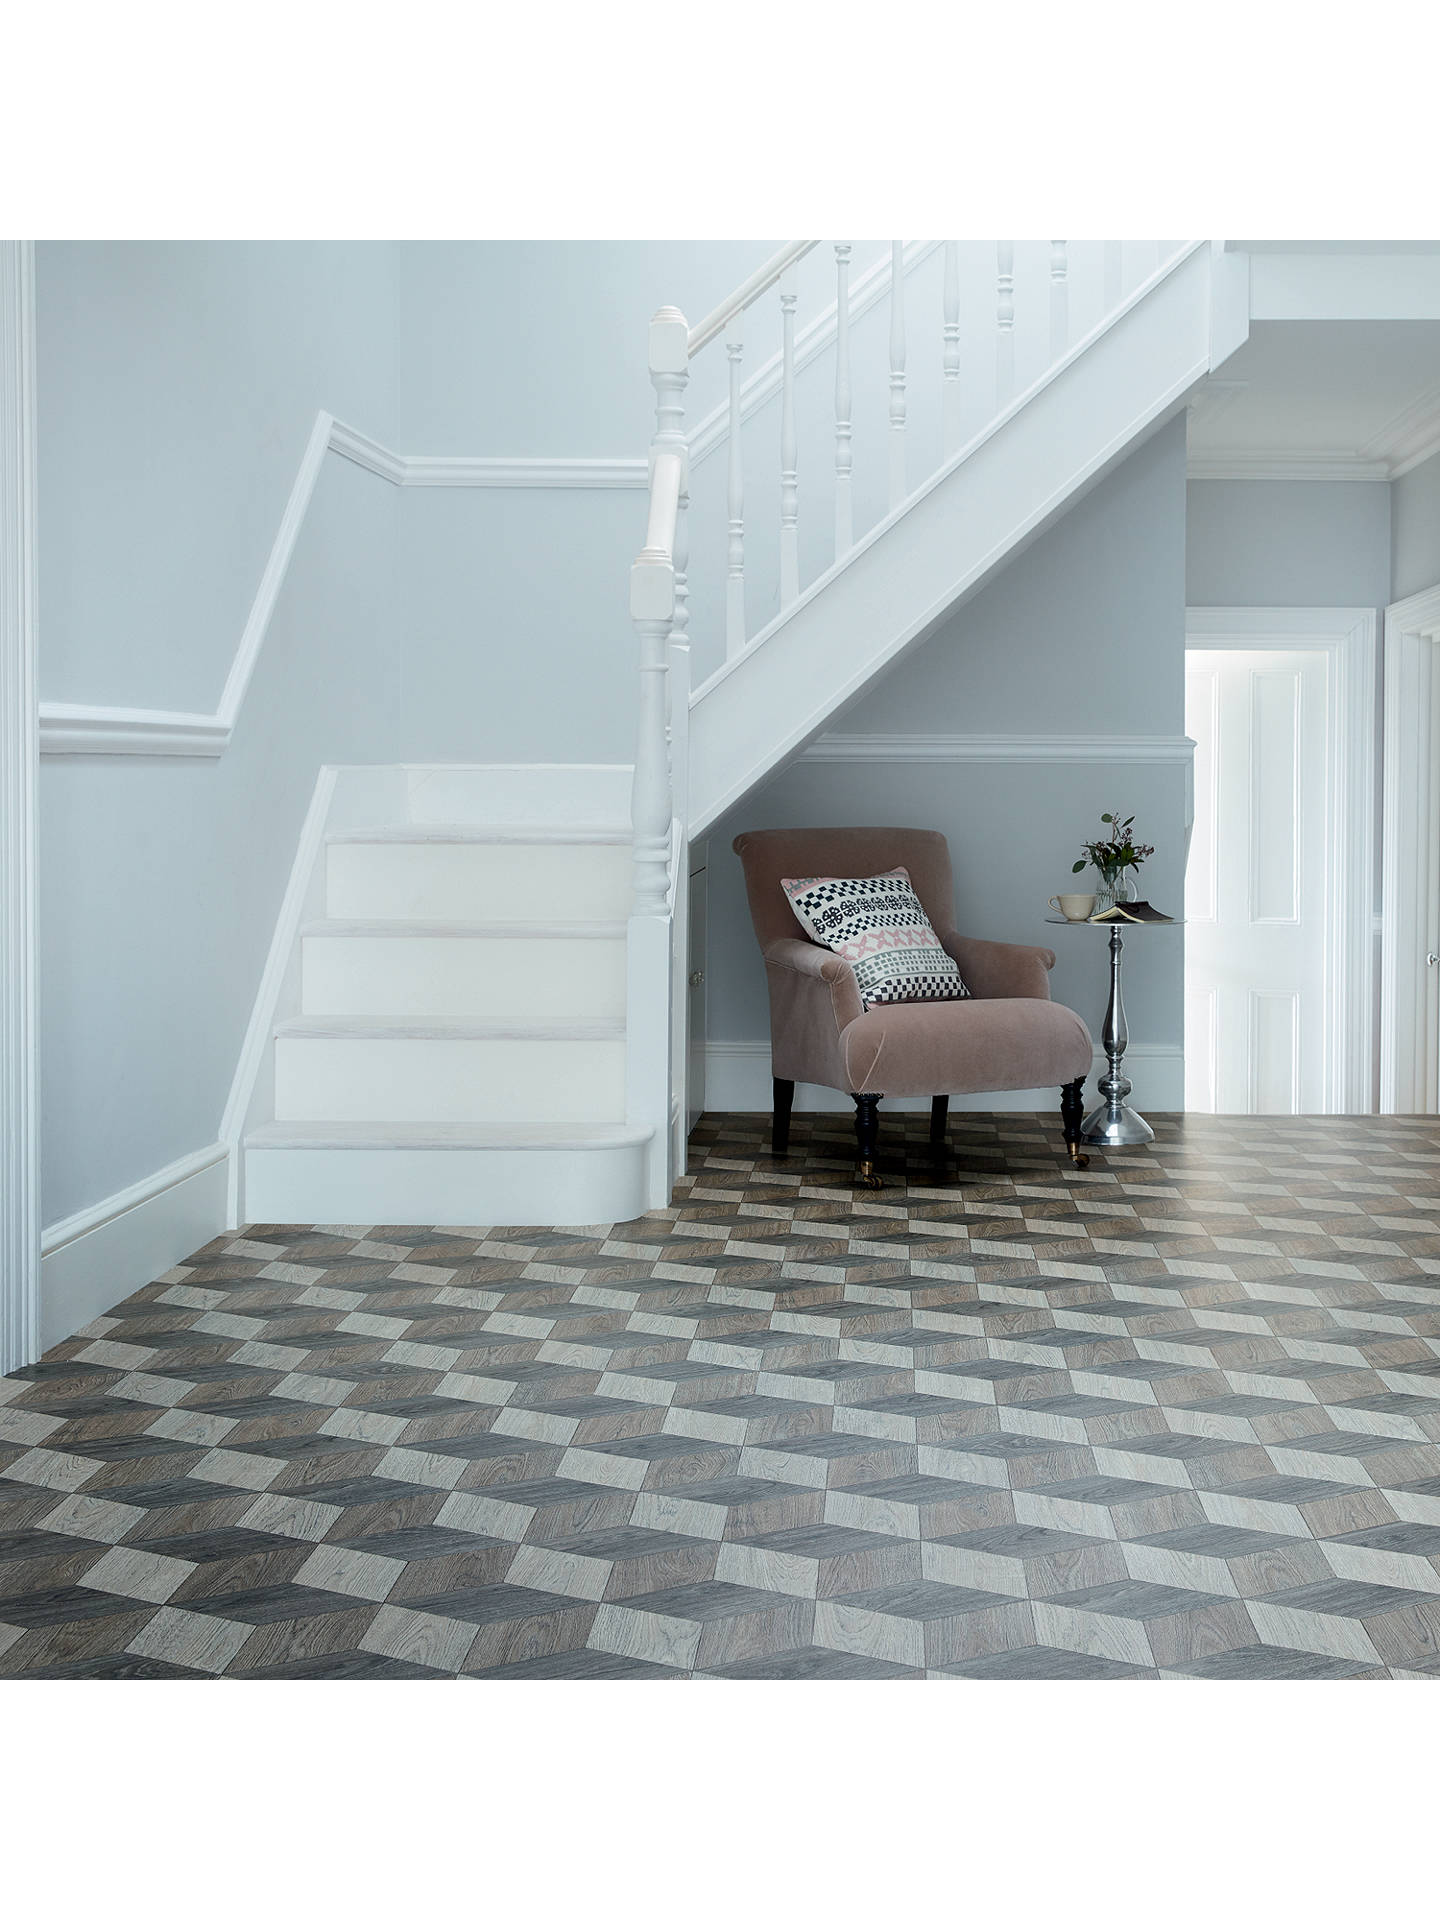 BuyJohn Lewis & Partners Design Elite Vinyl Flooring, Renslow Online at johnlewis.com